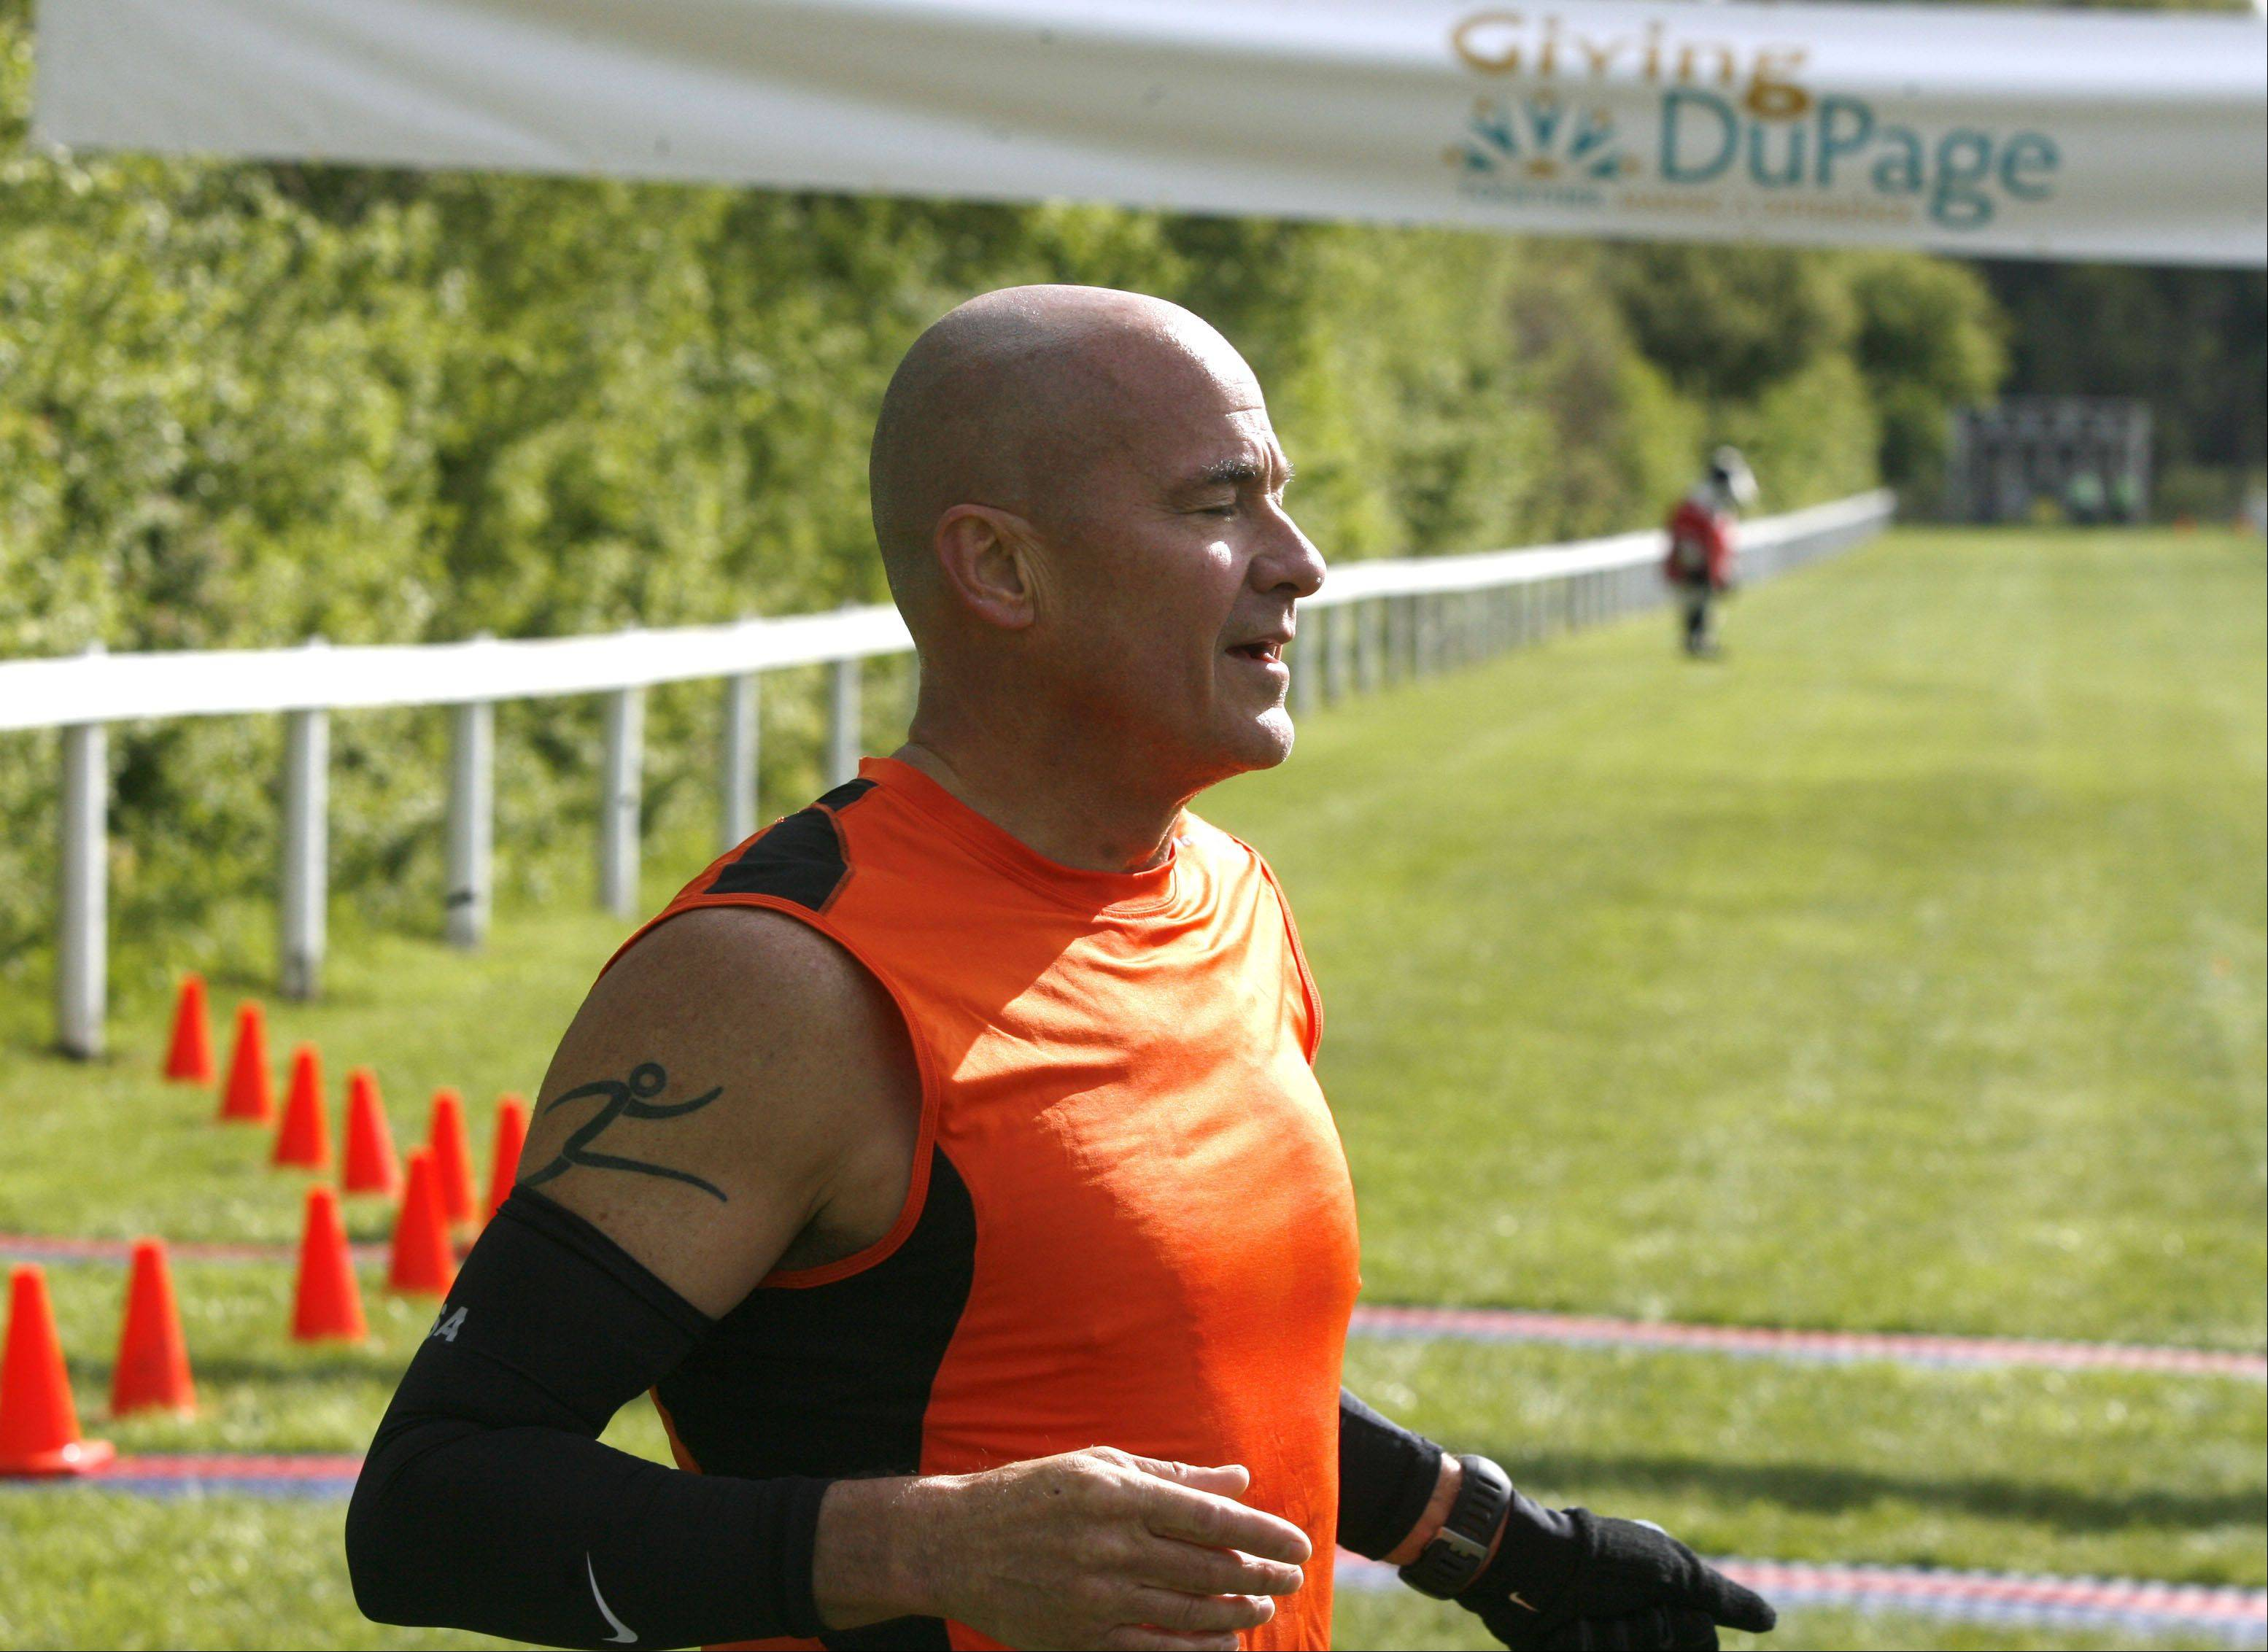 Barry Brandt, 54, of Villa Park wins the inaugural Human Race, a 5K run and 2-mile walk held in Danada Forest Preserve in Wheaton. Race participants raised money for the local charity of their choice. Brandt's winning time was 17:49.